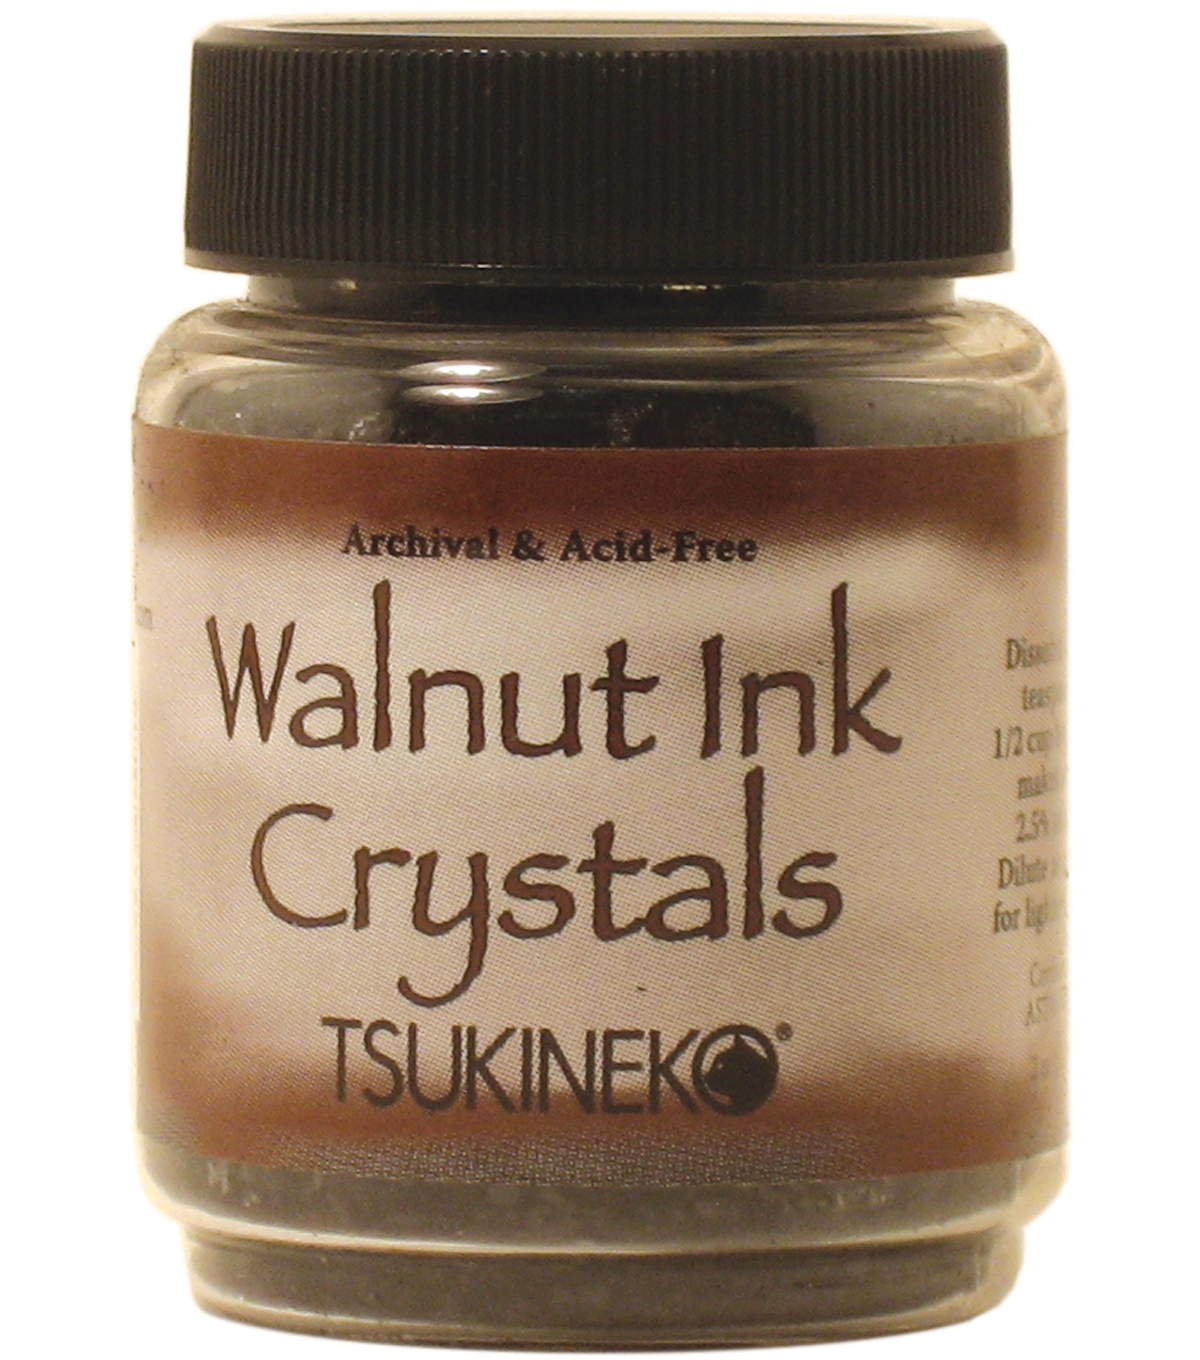 Tsukineko 2 oz. Walnut Ink Crystals-1PK